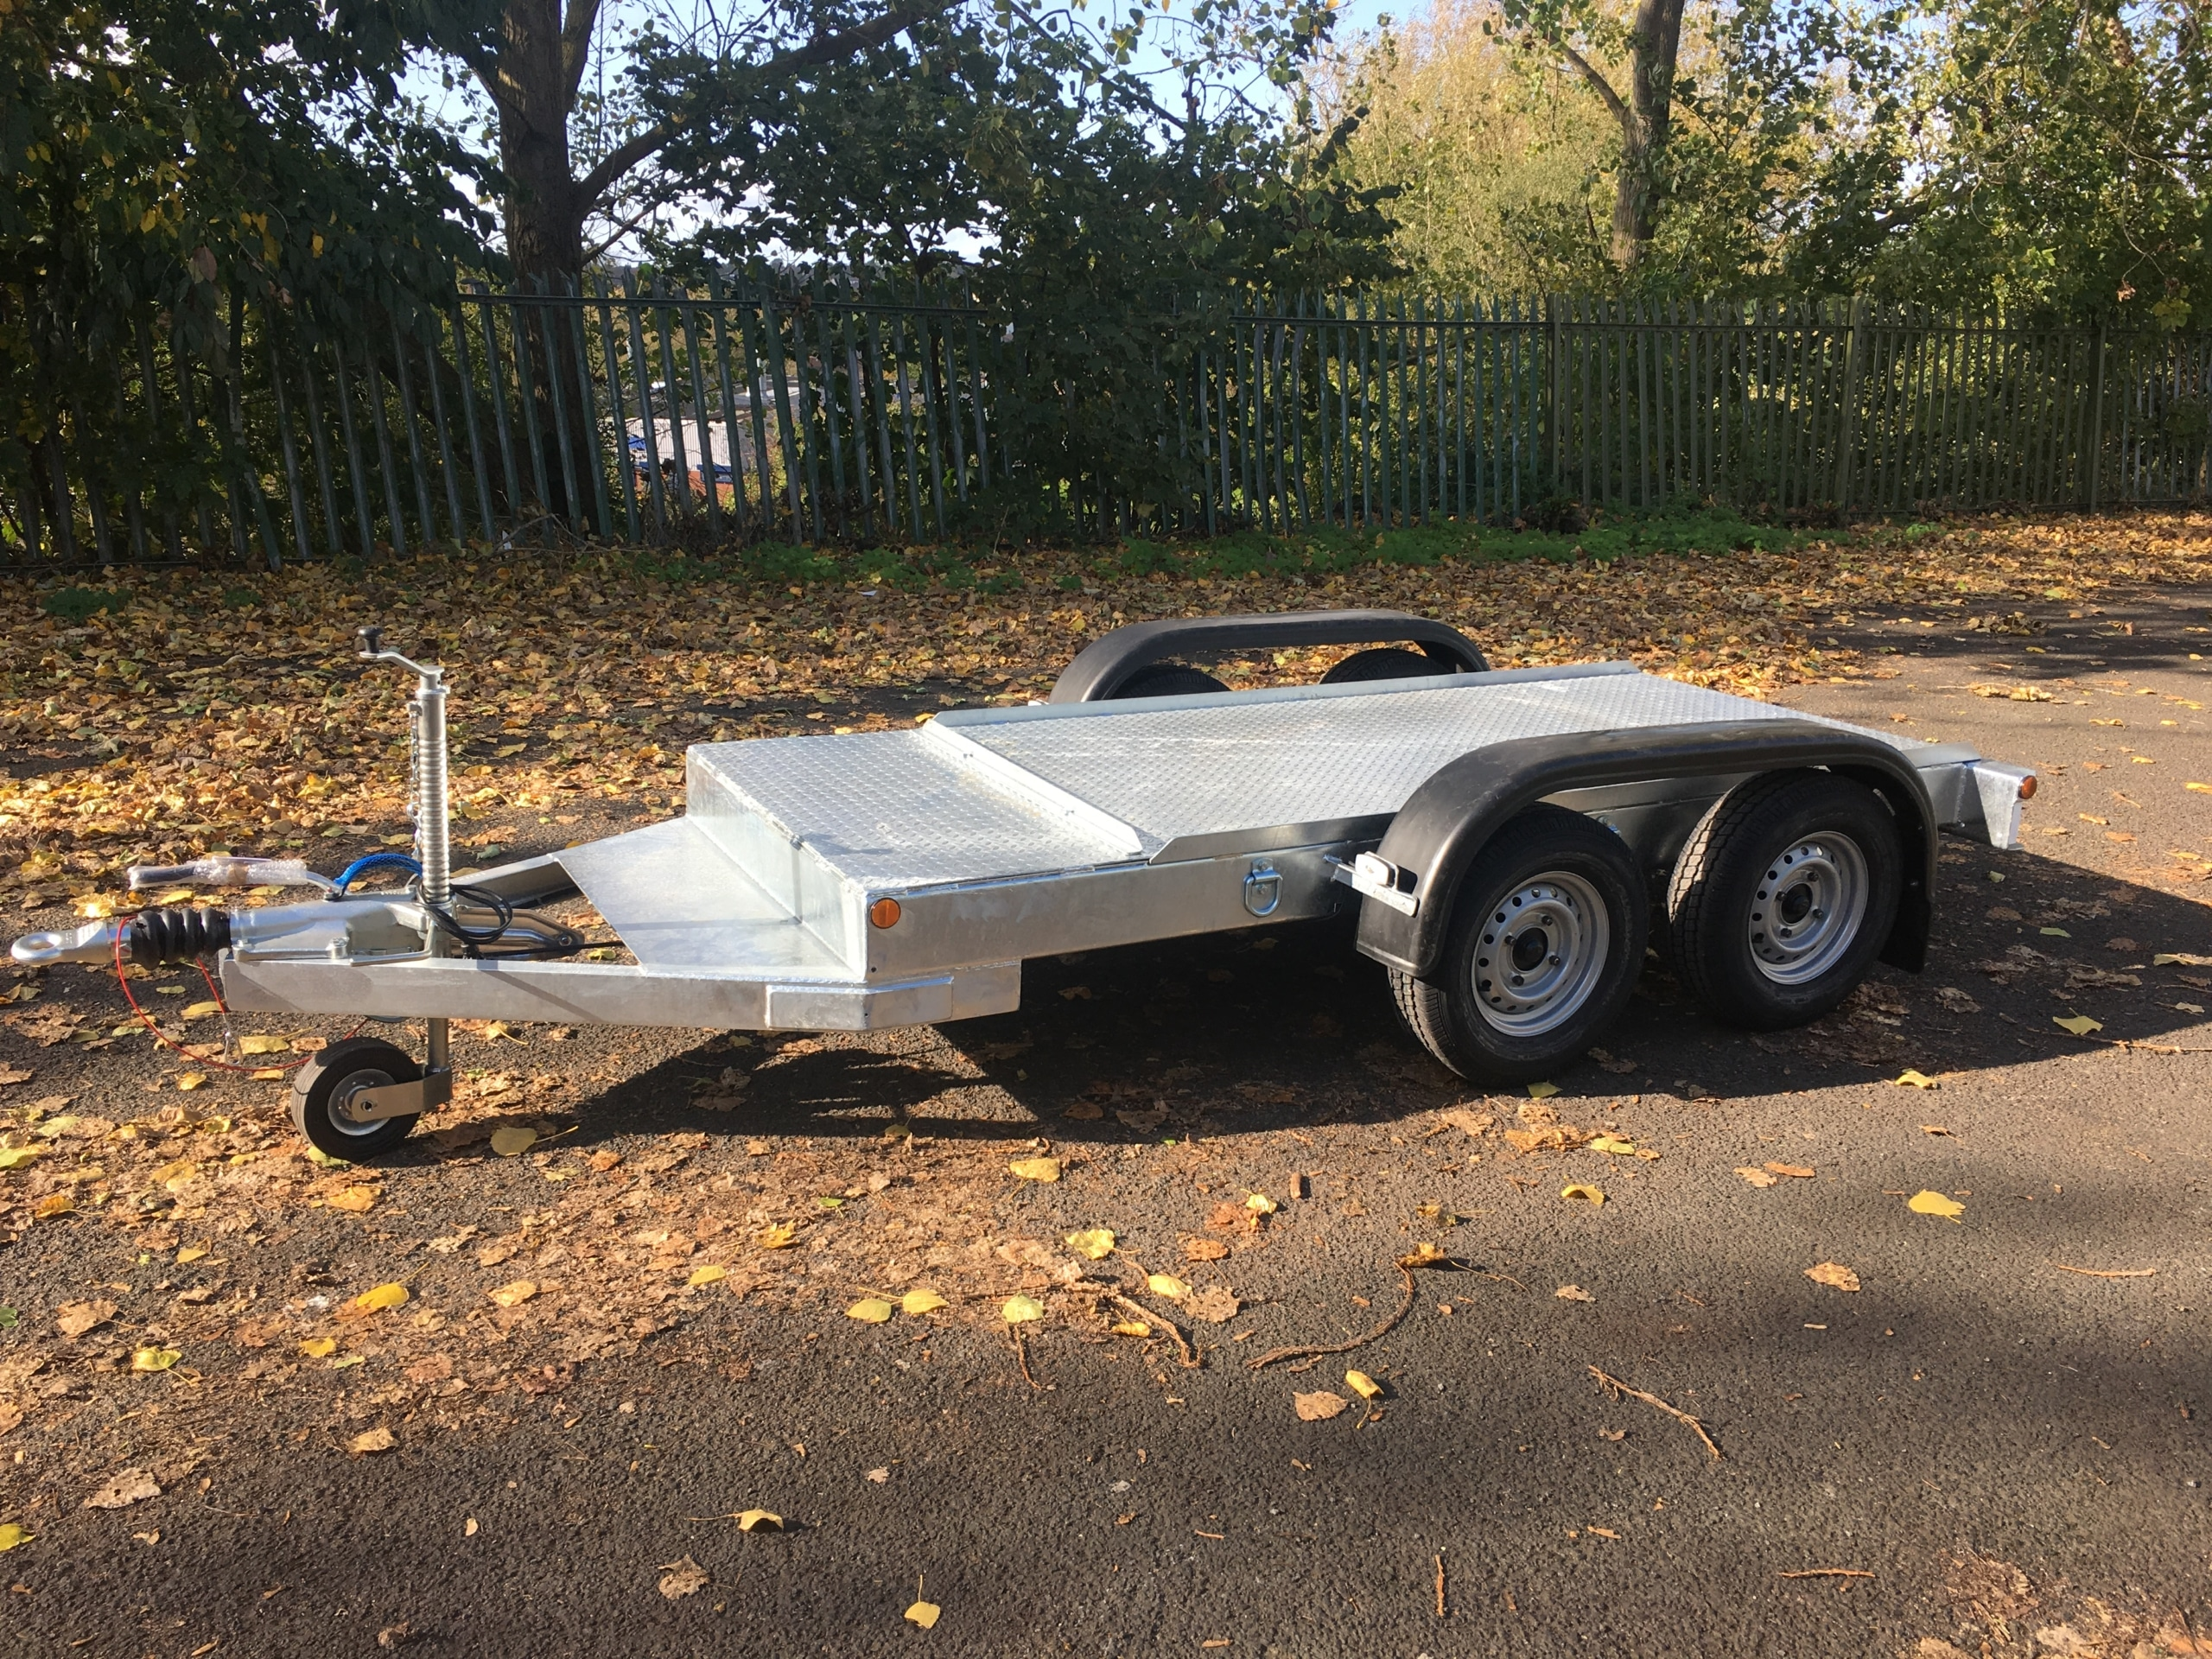 Polycube flatbed trailer